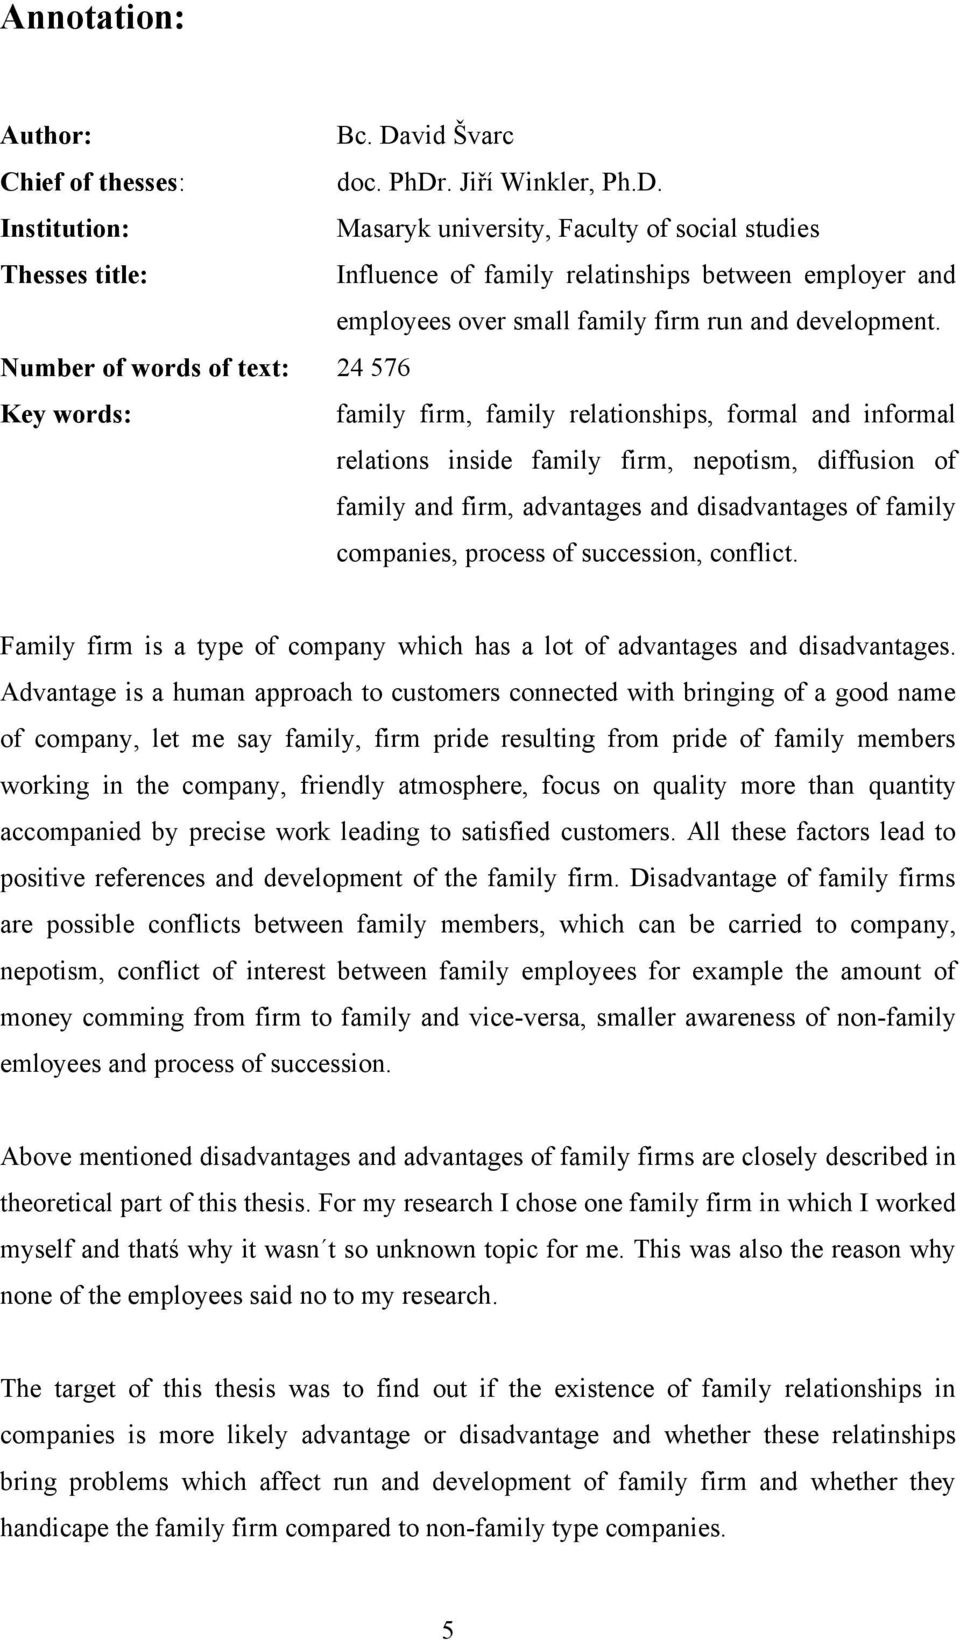 advantages and disadvantages of nepotism